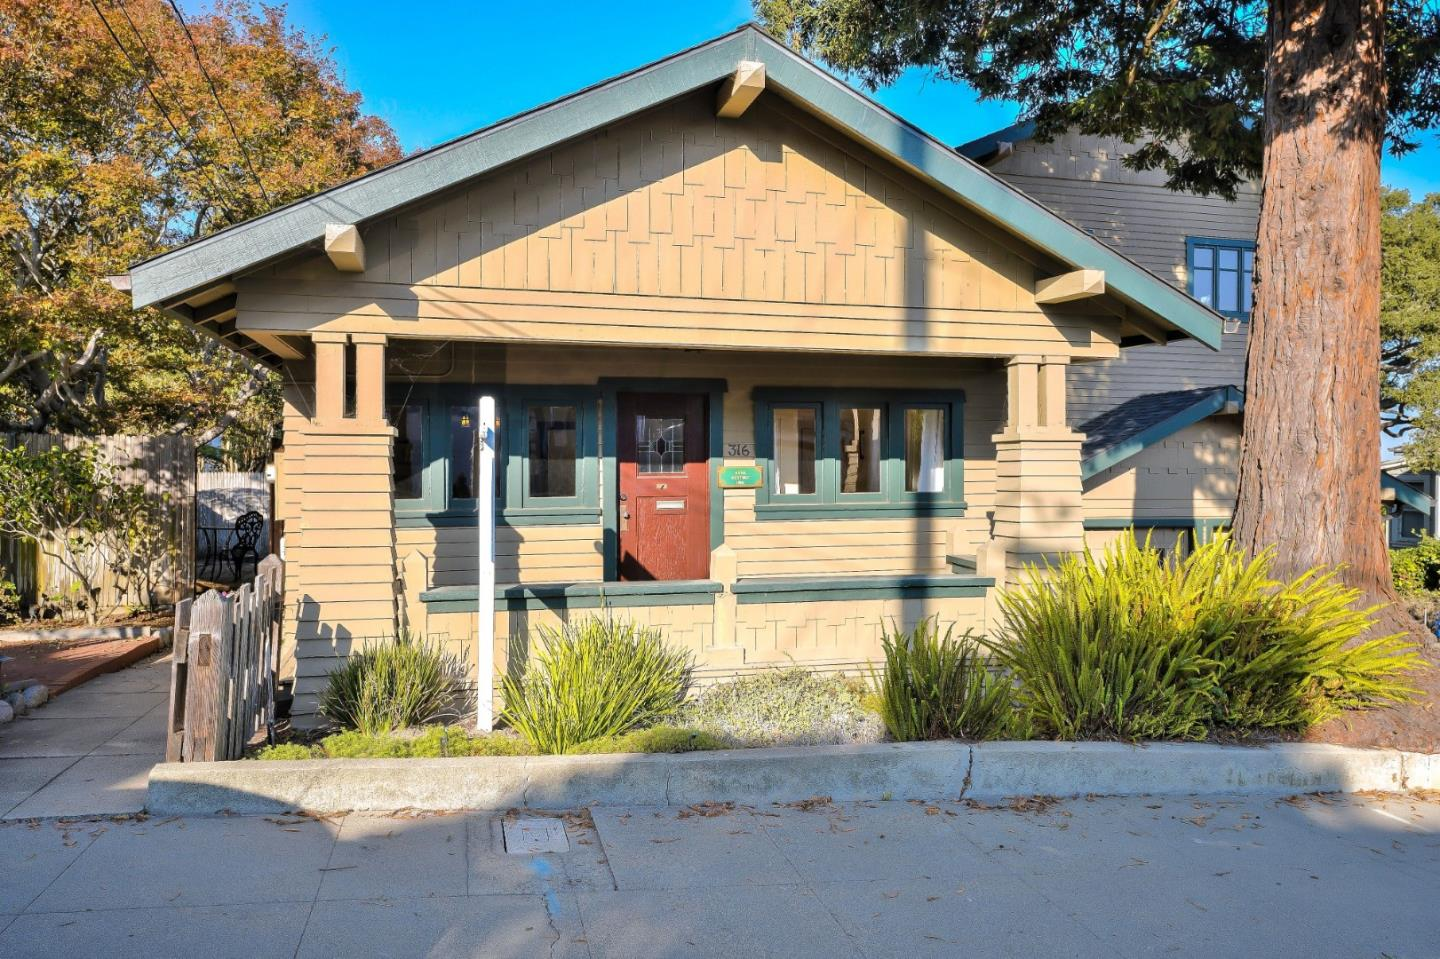 Property for sale at 316 14th ST, Pacific Grove,  California 93950